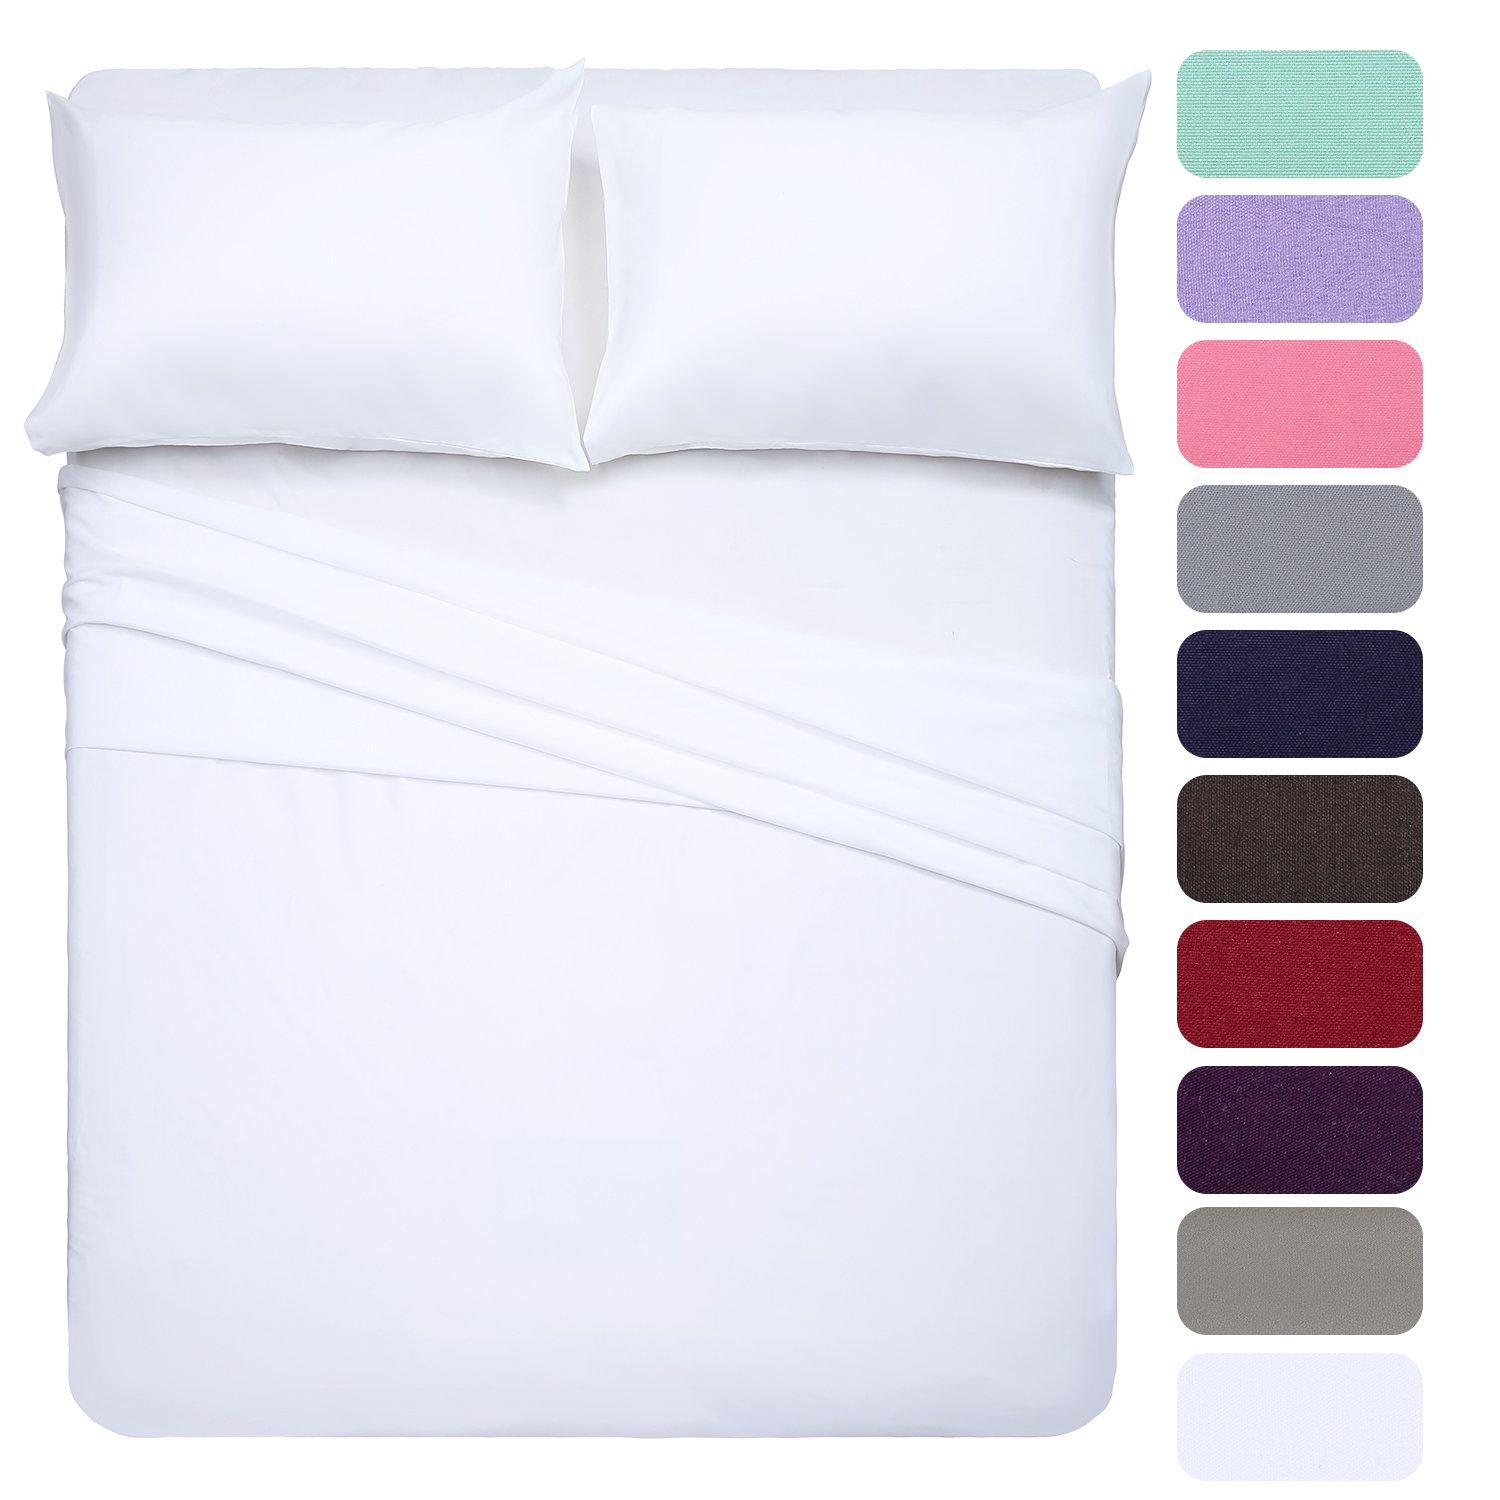 Full Size Bed Sheet Set - 4 Piece(White),Microfiber 1800 Threads Egyptian Super Soft Sheets 16-Inch Deep Pocket - Hypoallergenic Bedding by Homelike Collection